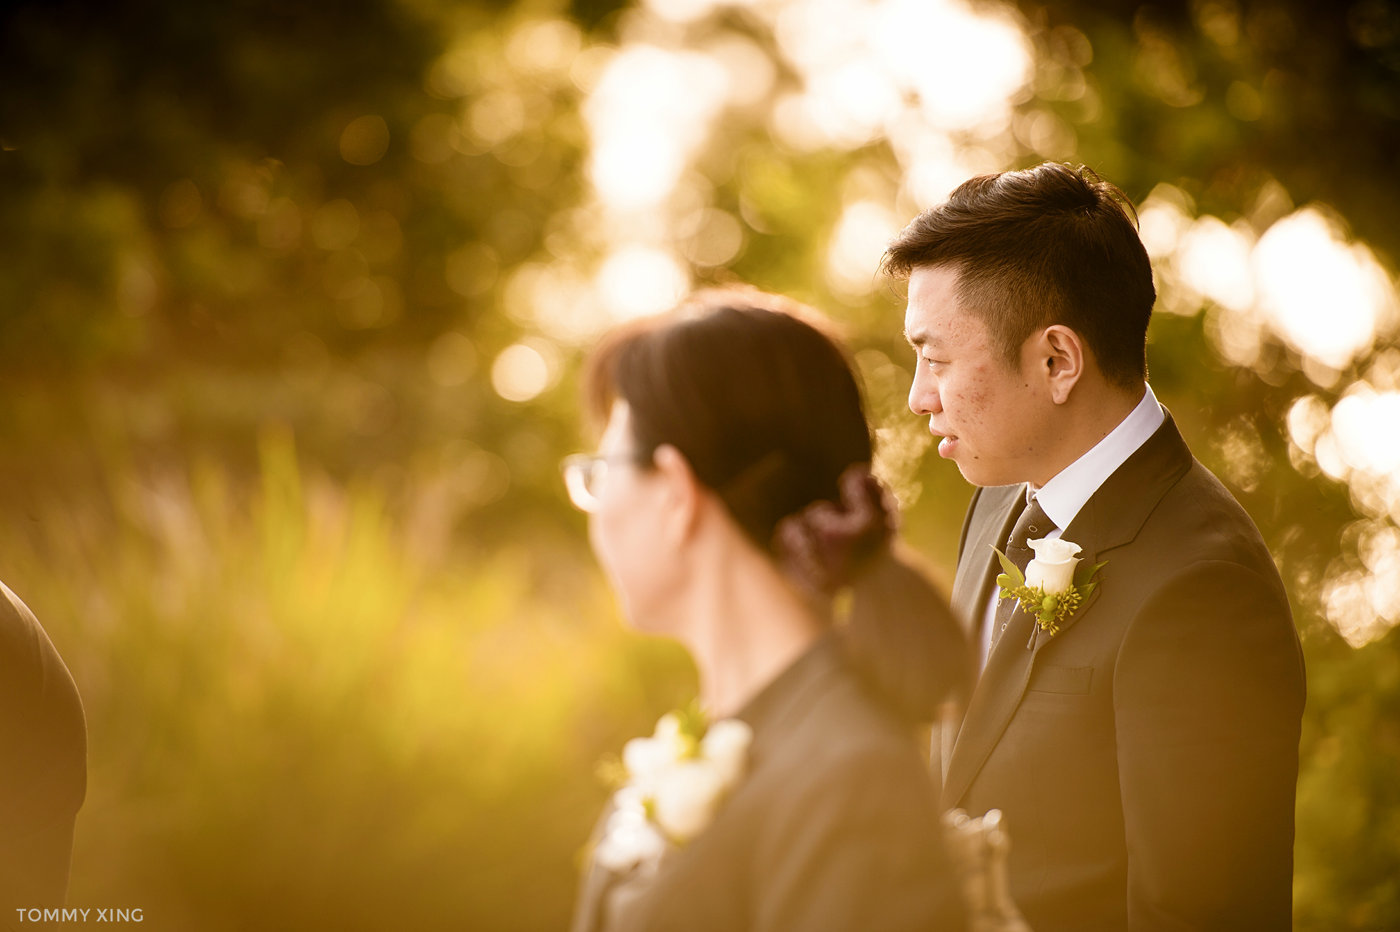 Qinglu Meng & Daozheng Chen Wedding Slideshow-179-E.JPG